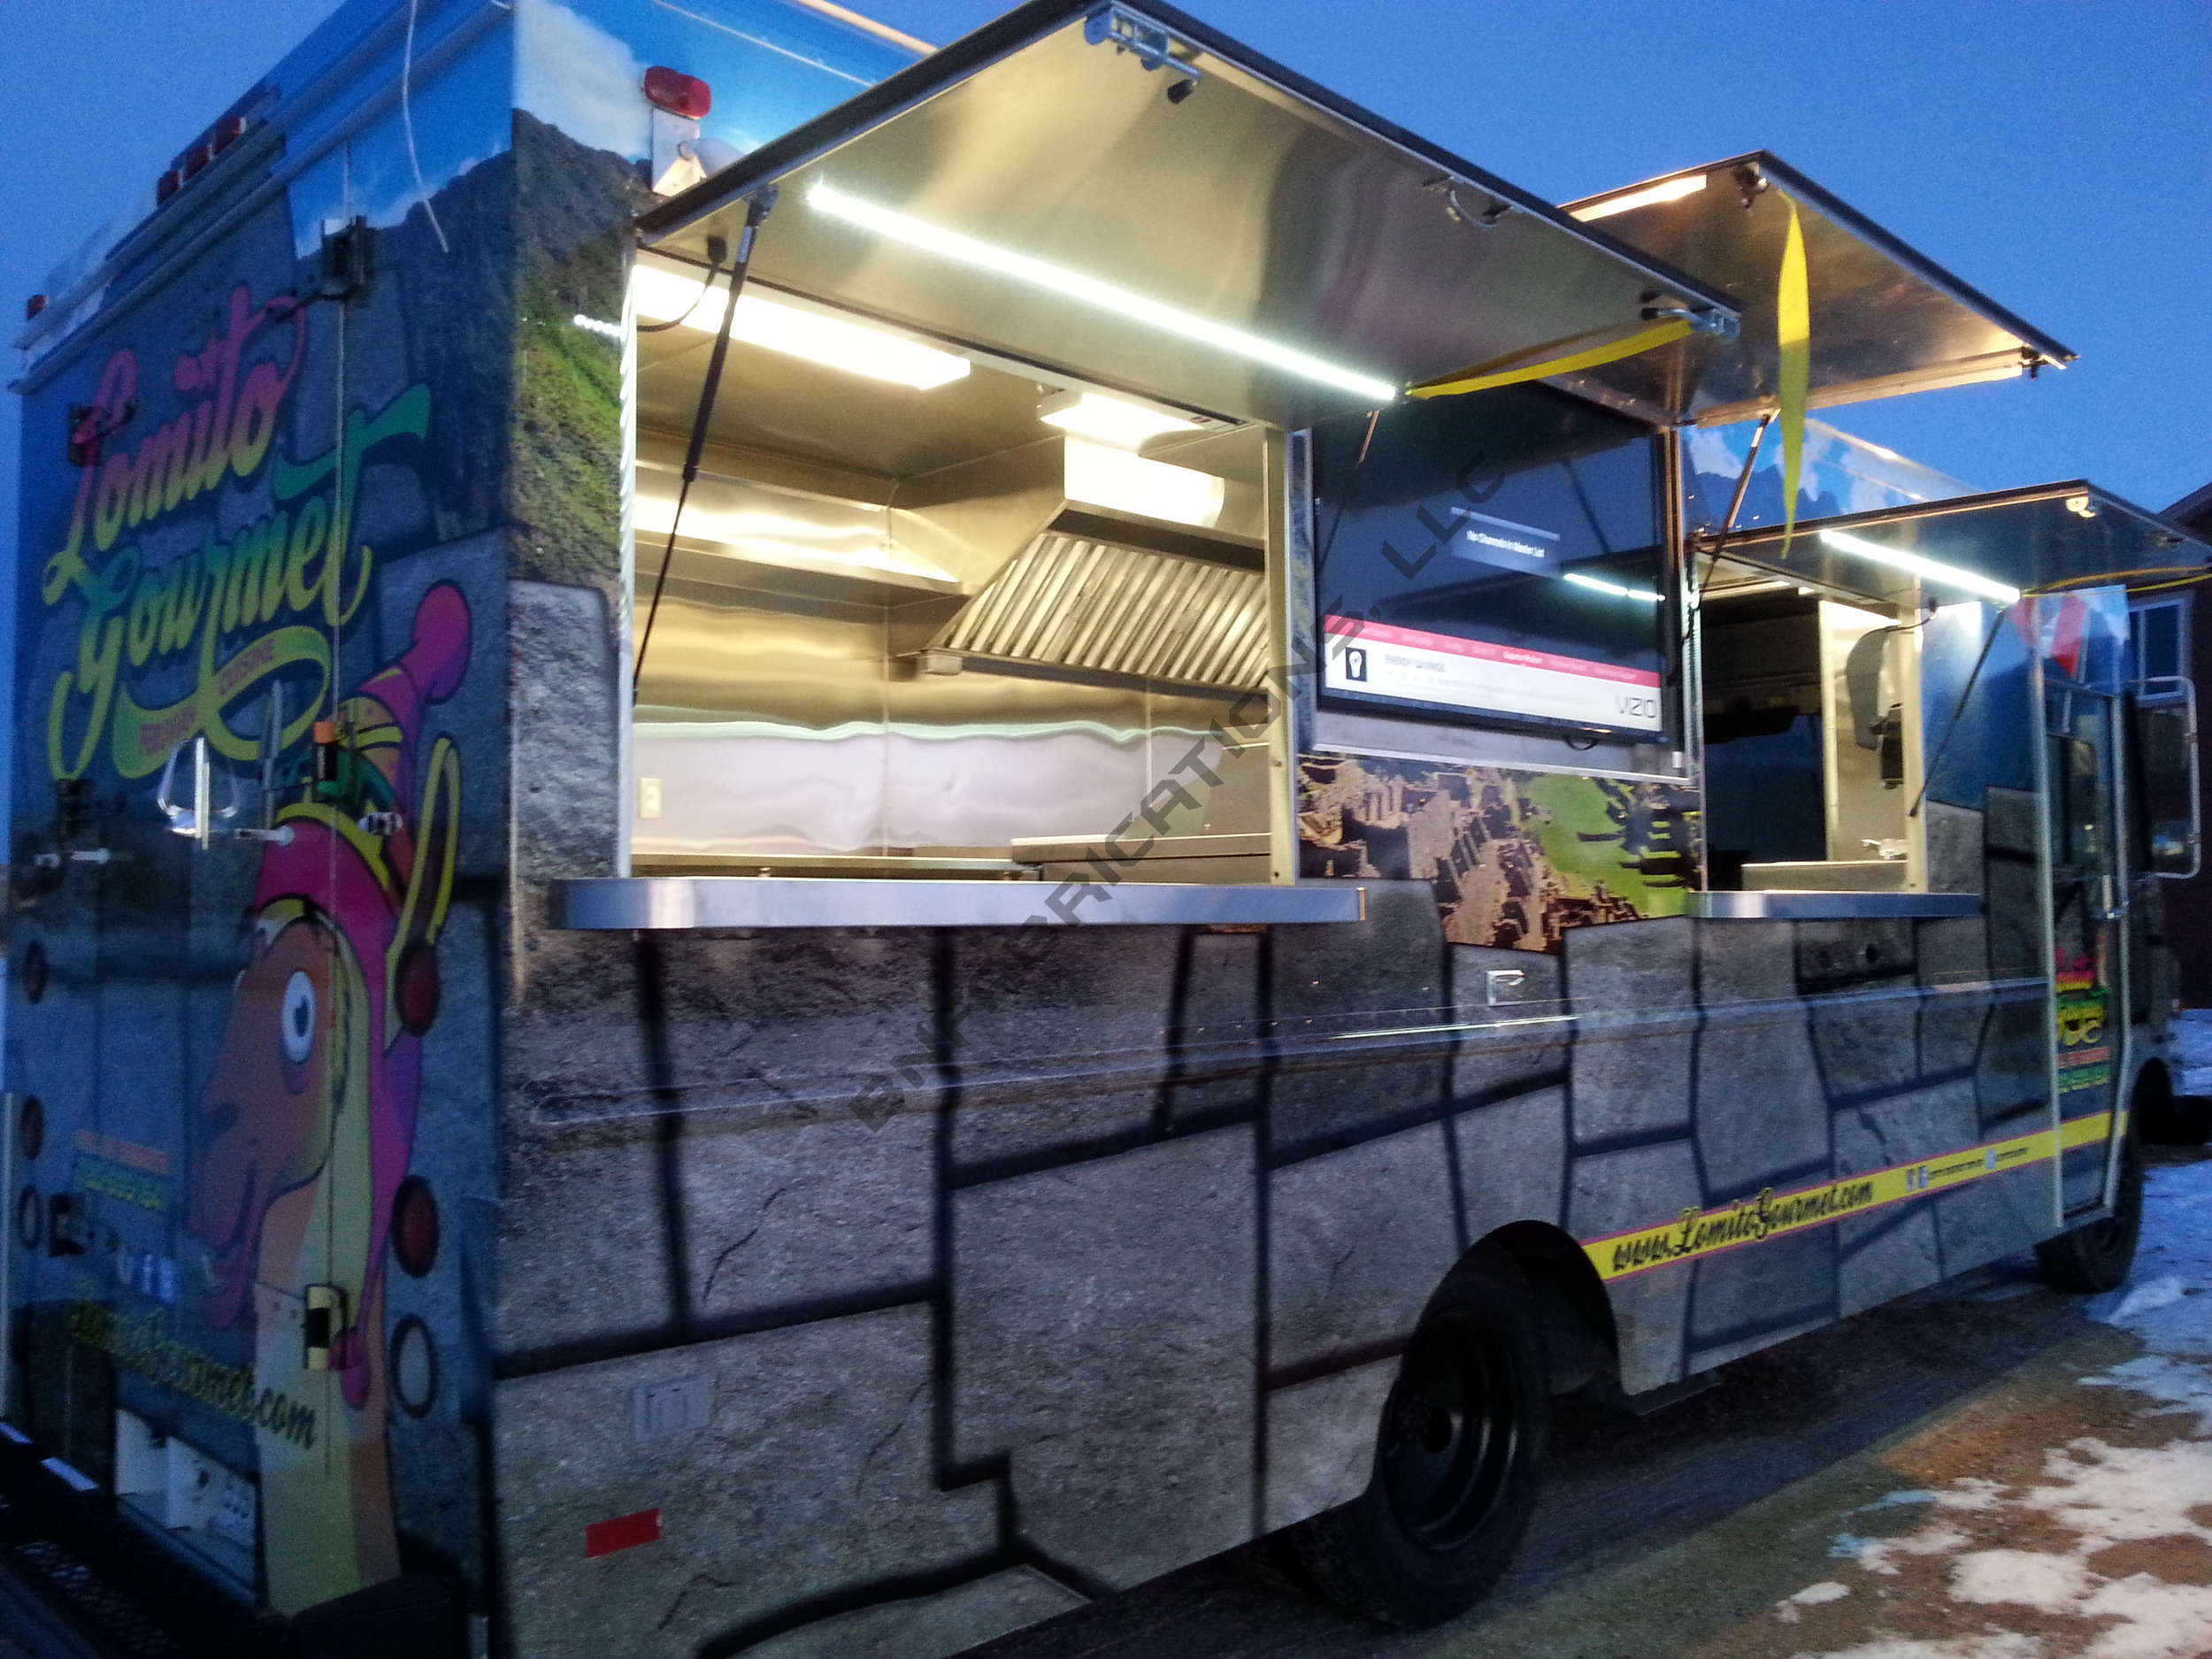 Lomito's food truck serving window and TV awnings